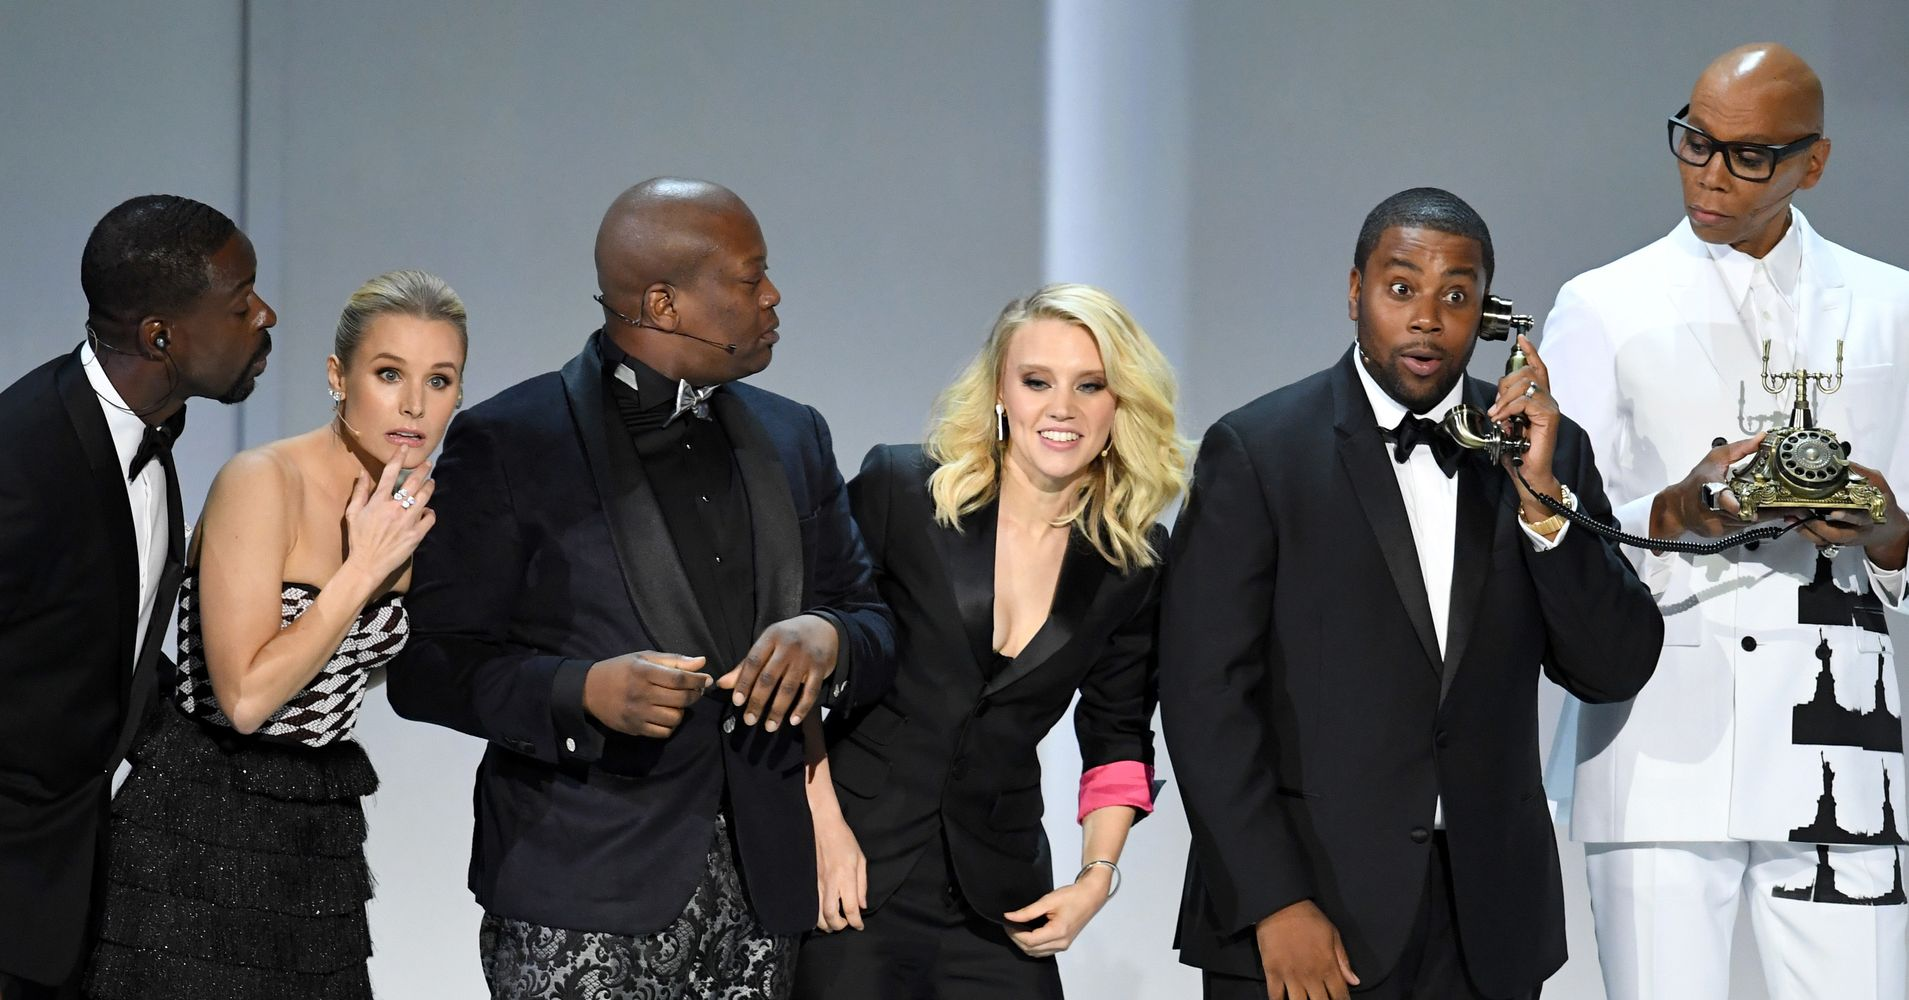 Kristen Bell, Kate McKinnon And John Legend Open Emmys With Diversity Musical